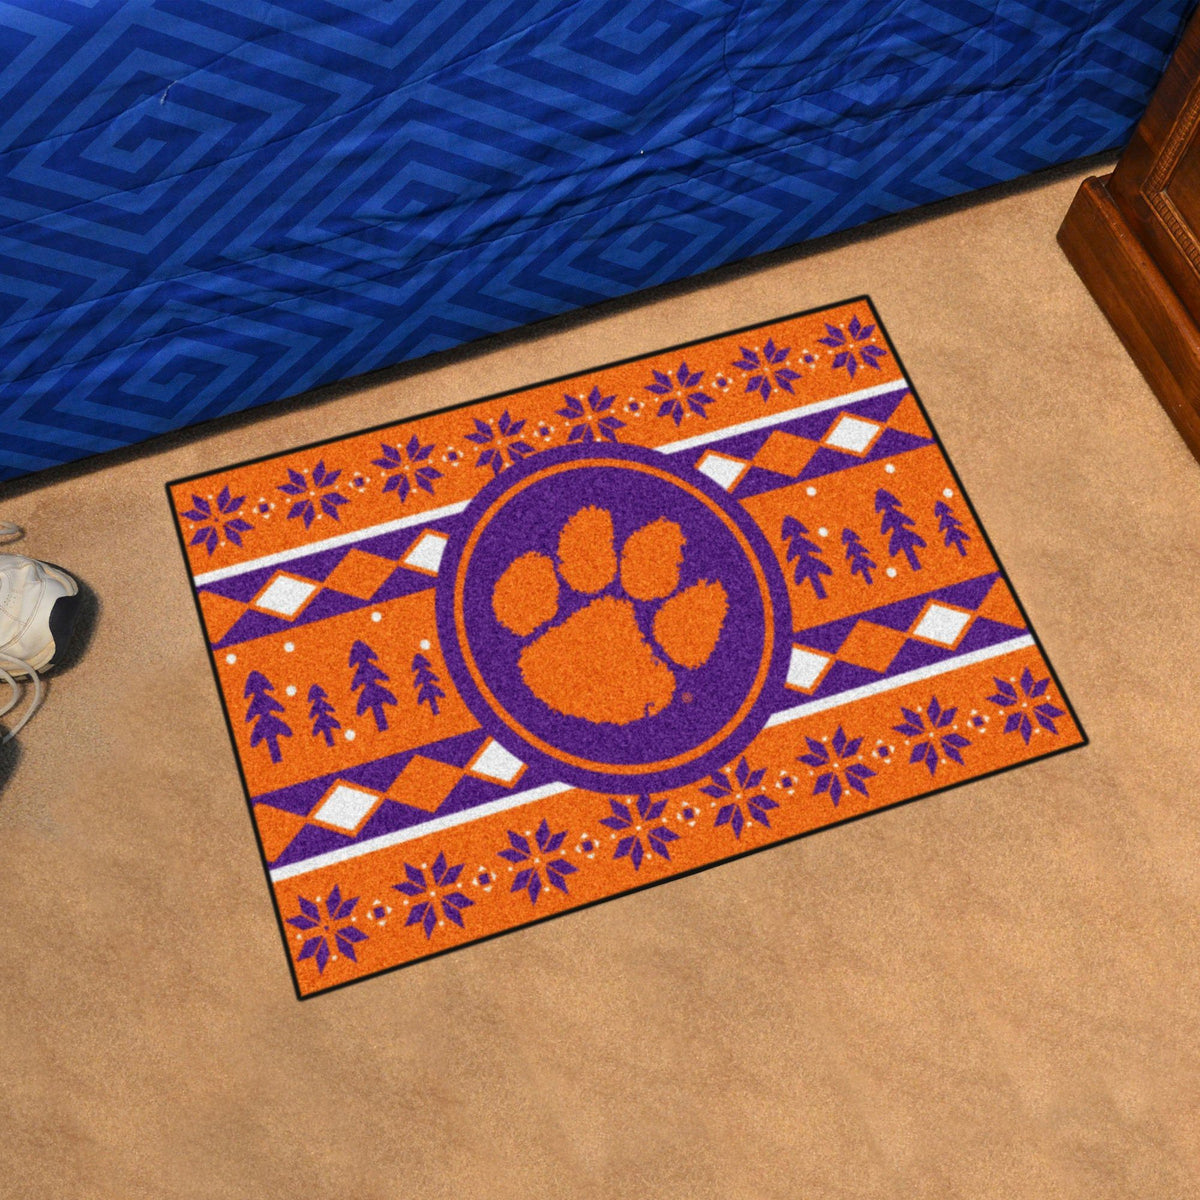 Collegiate - Holiday Sweater Starter Mat Collegiate Mats, Rectangular Mats, Holiday Sweater Starter Mat, Collegiate, Home Fan Mats Clemson